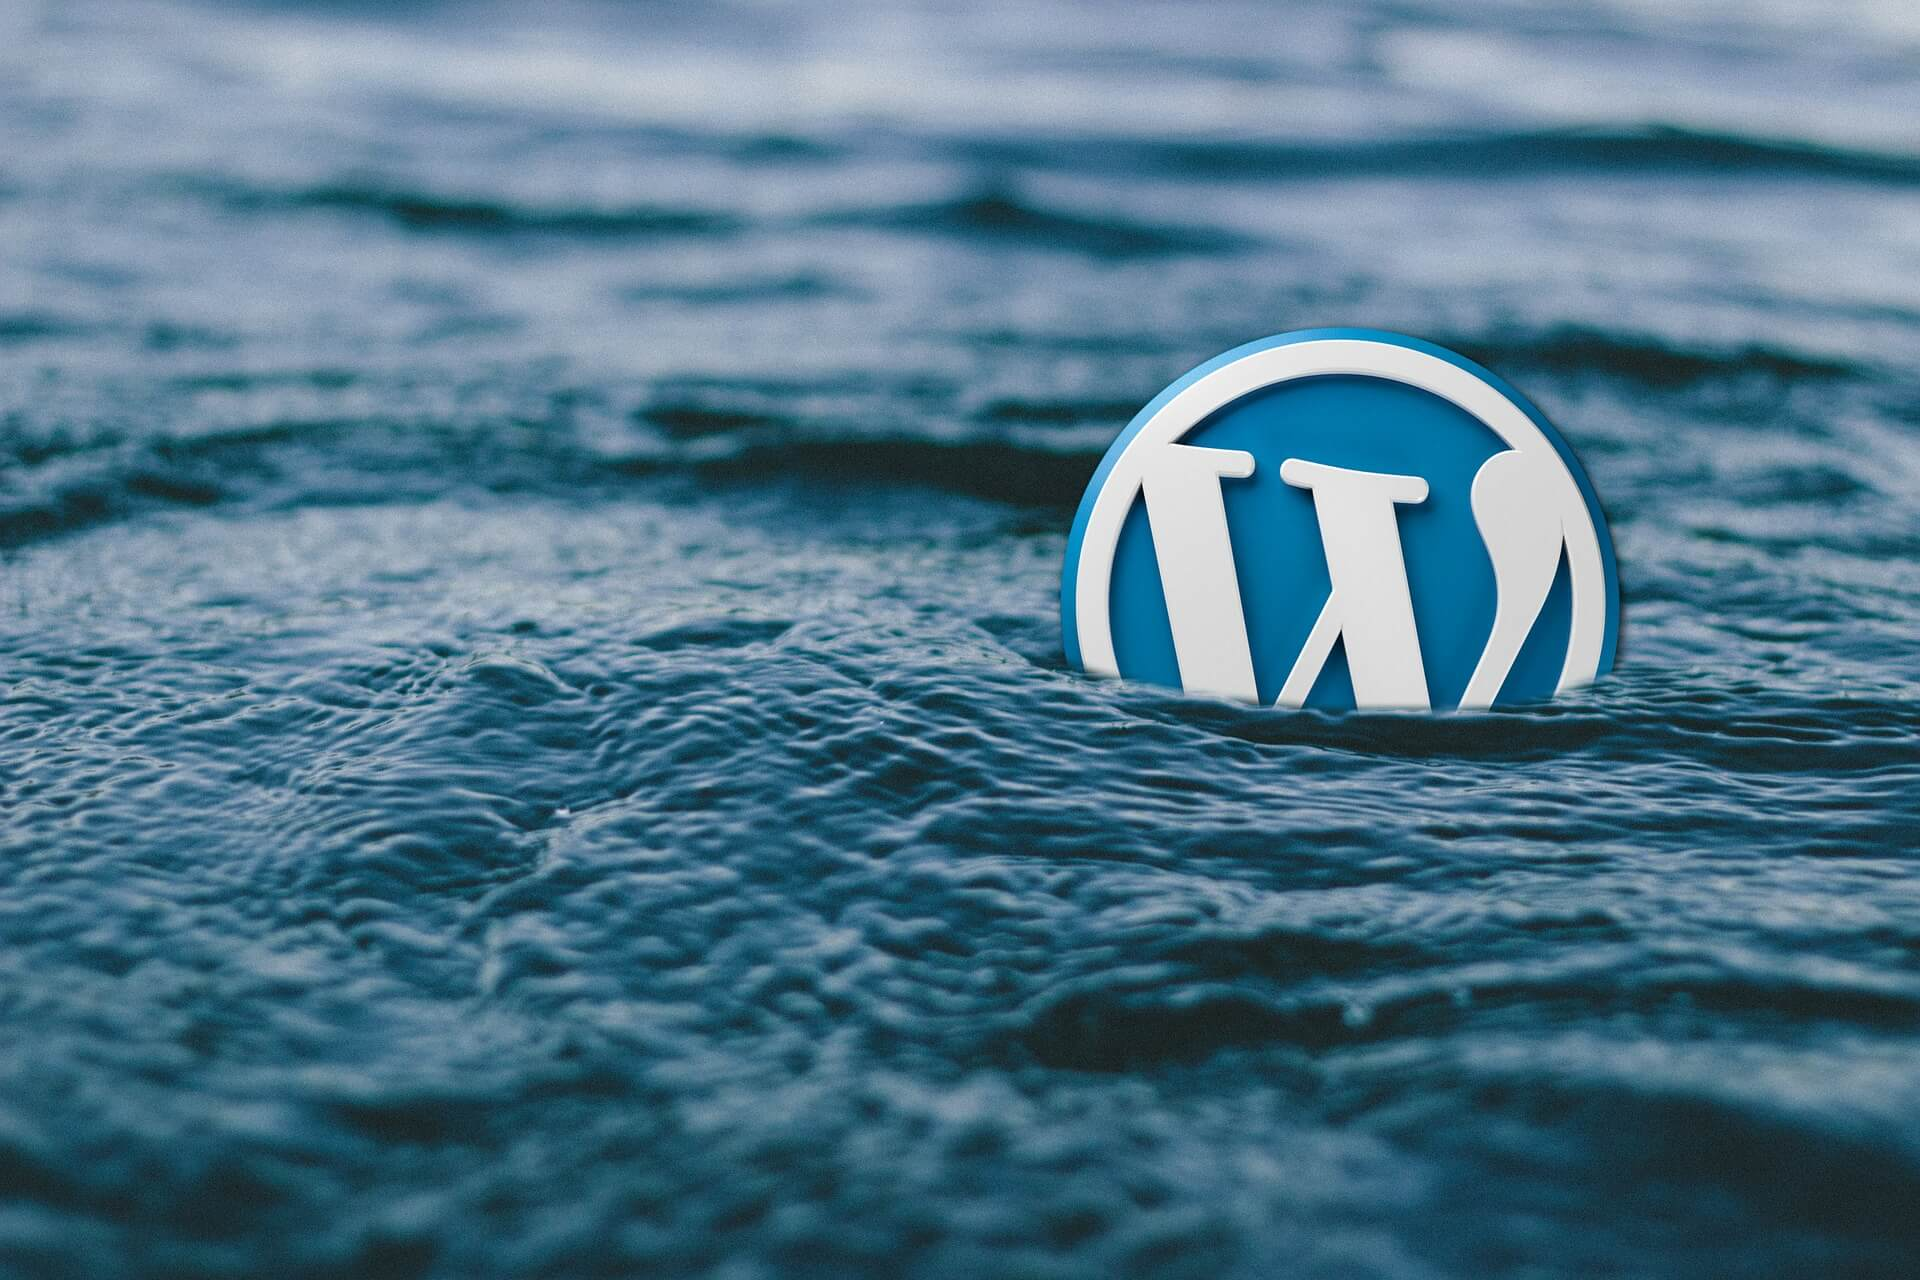 Wordpress logo adrift at sea to represent the need for WordPress help